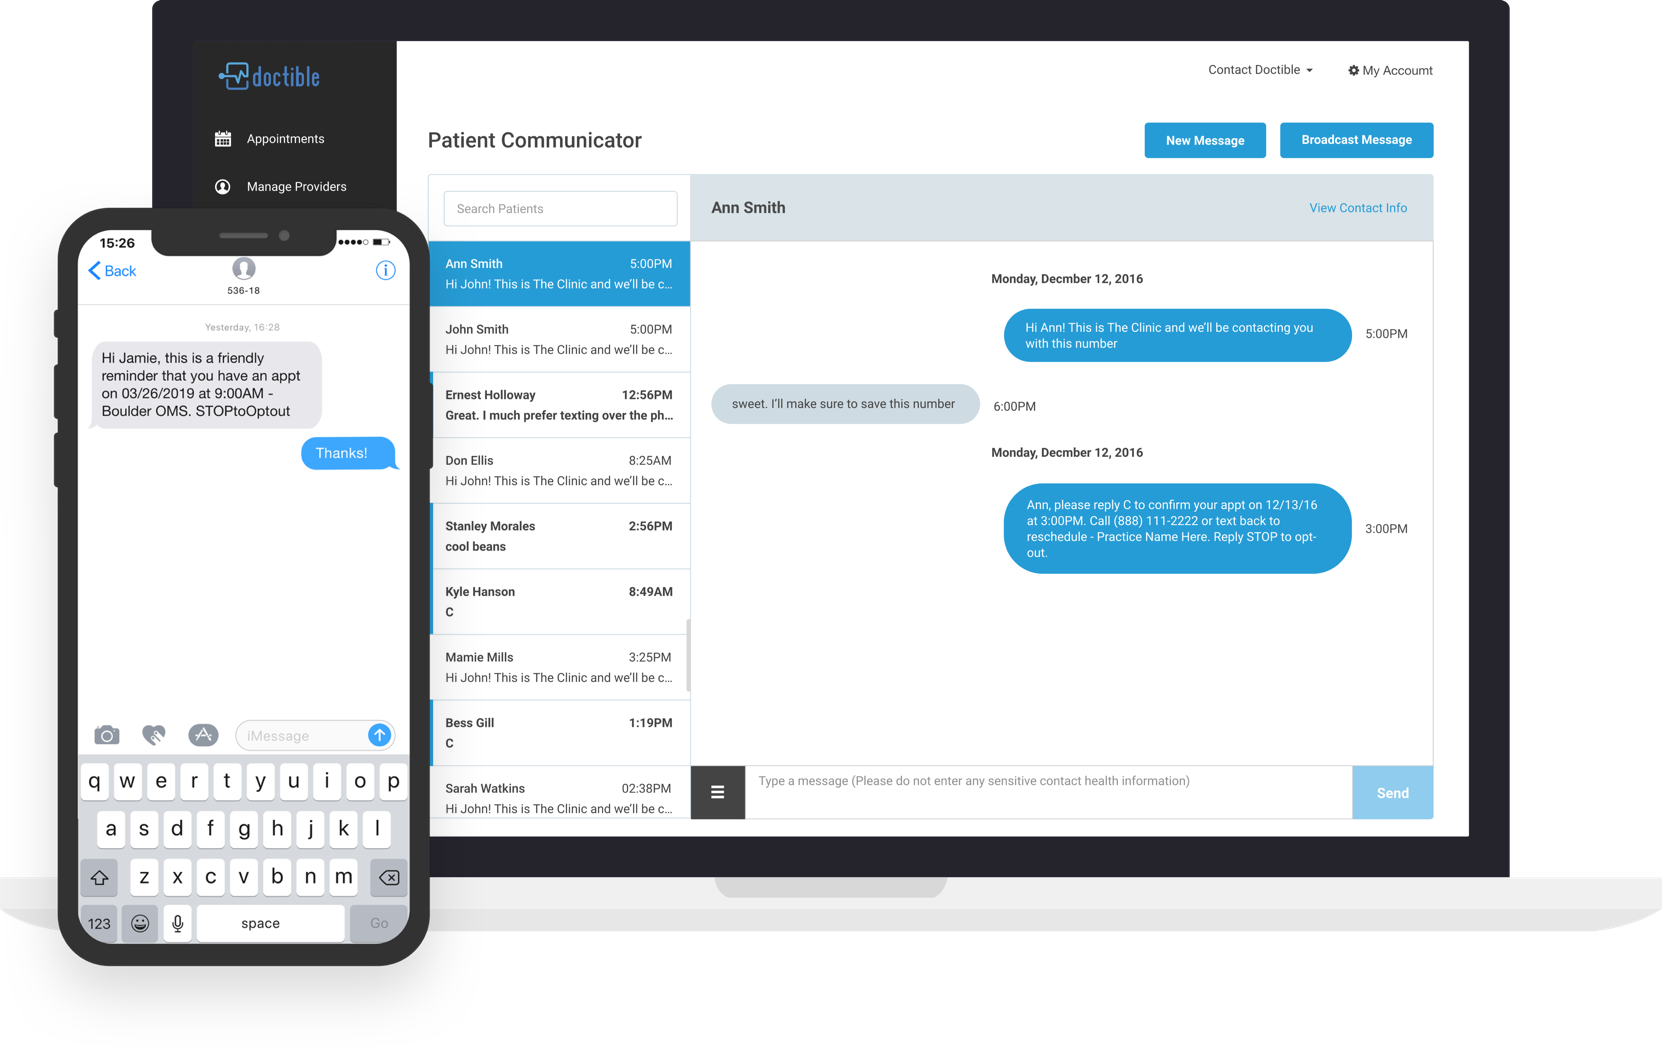 Doctible unified communication inbox